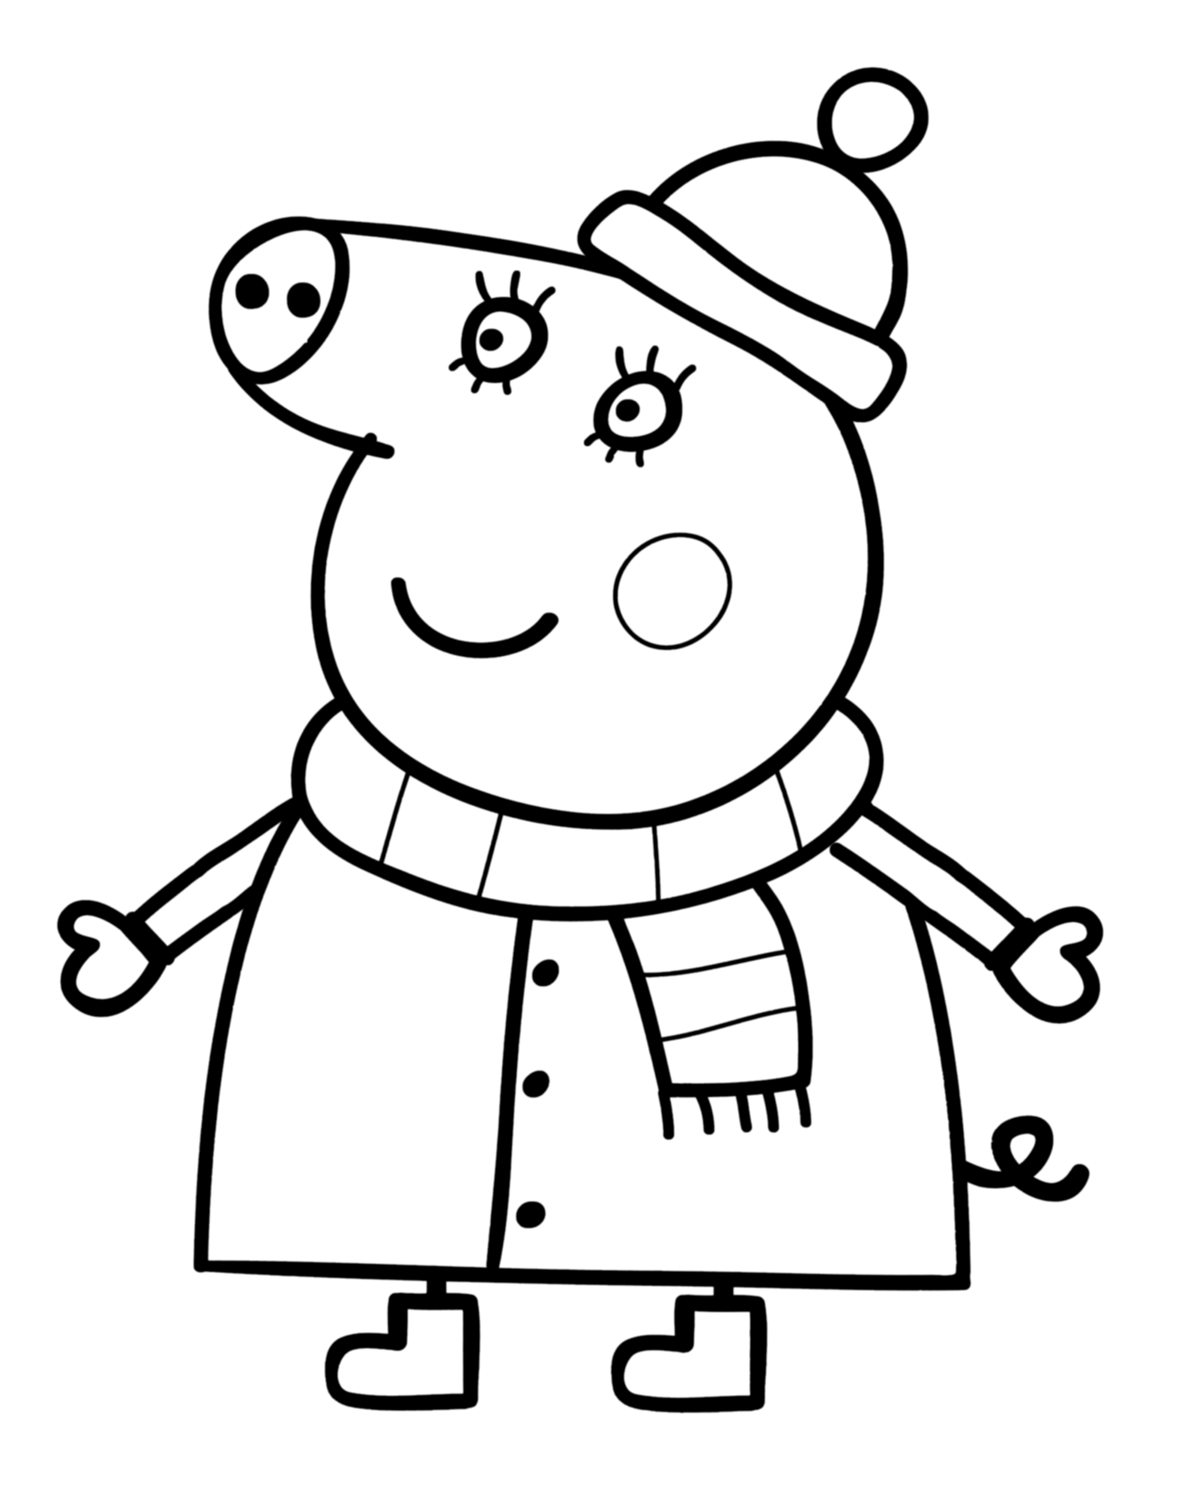 """Search Results for """"Peppa Pig Png"""" - Calendar 2015"""